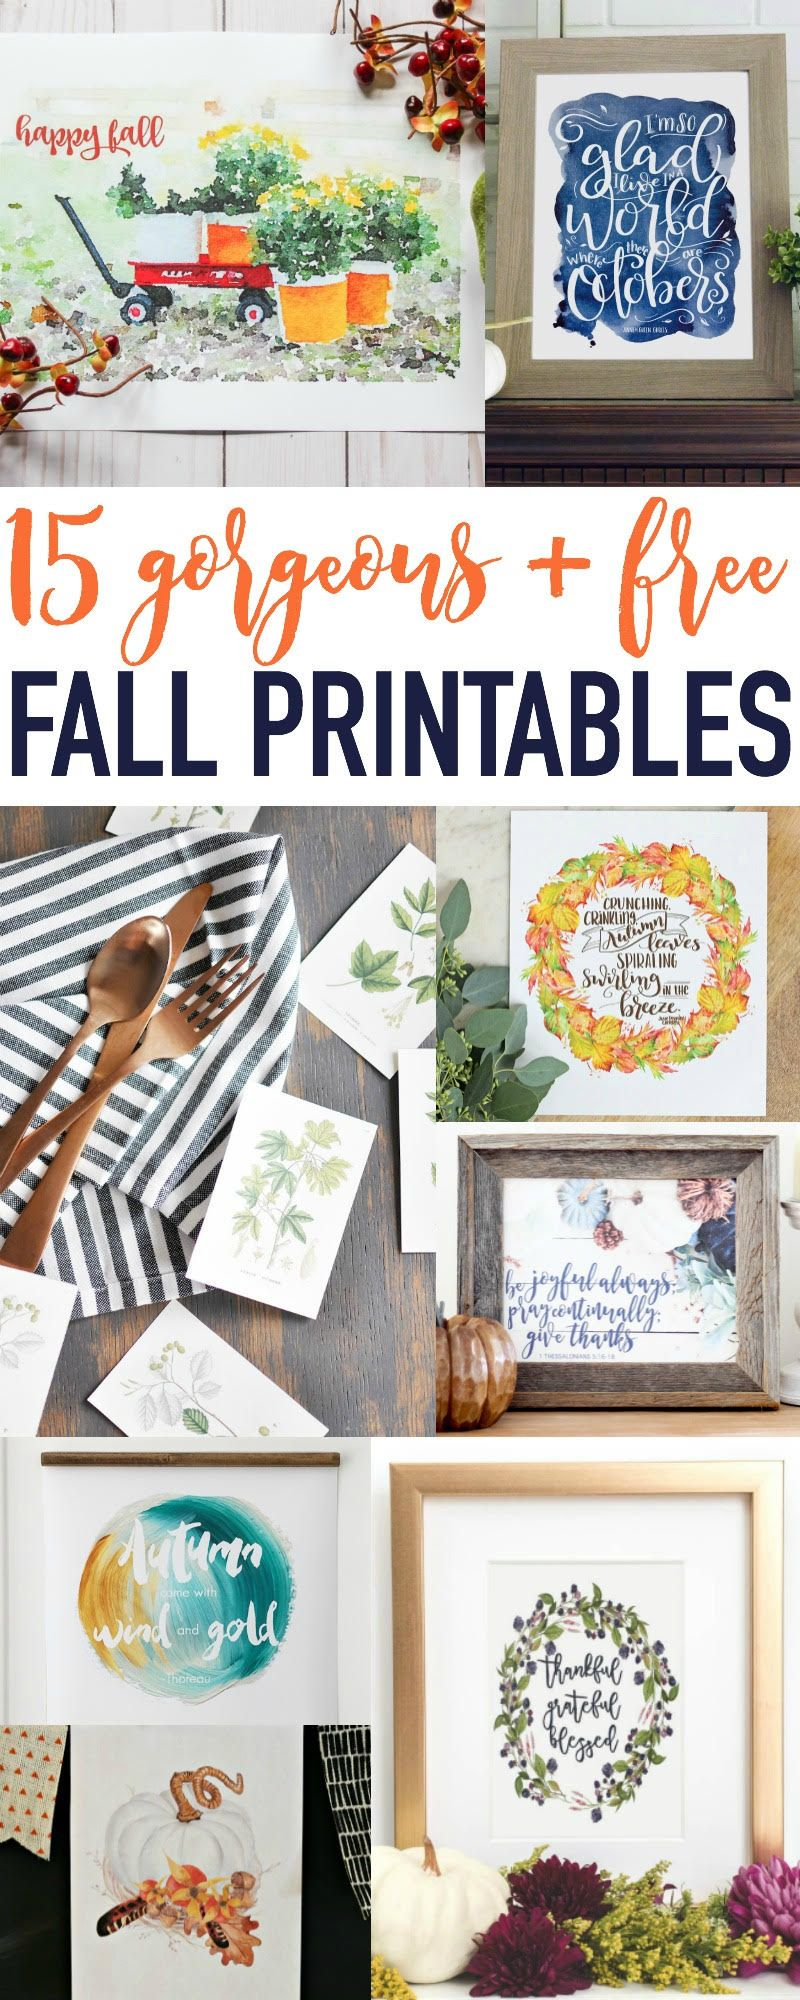 Saving for later....LOVE these 15 Amazing Fall Printables with One Project Closer